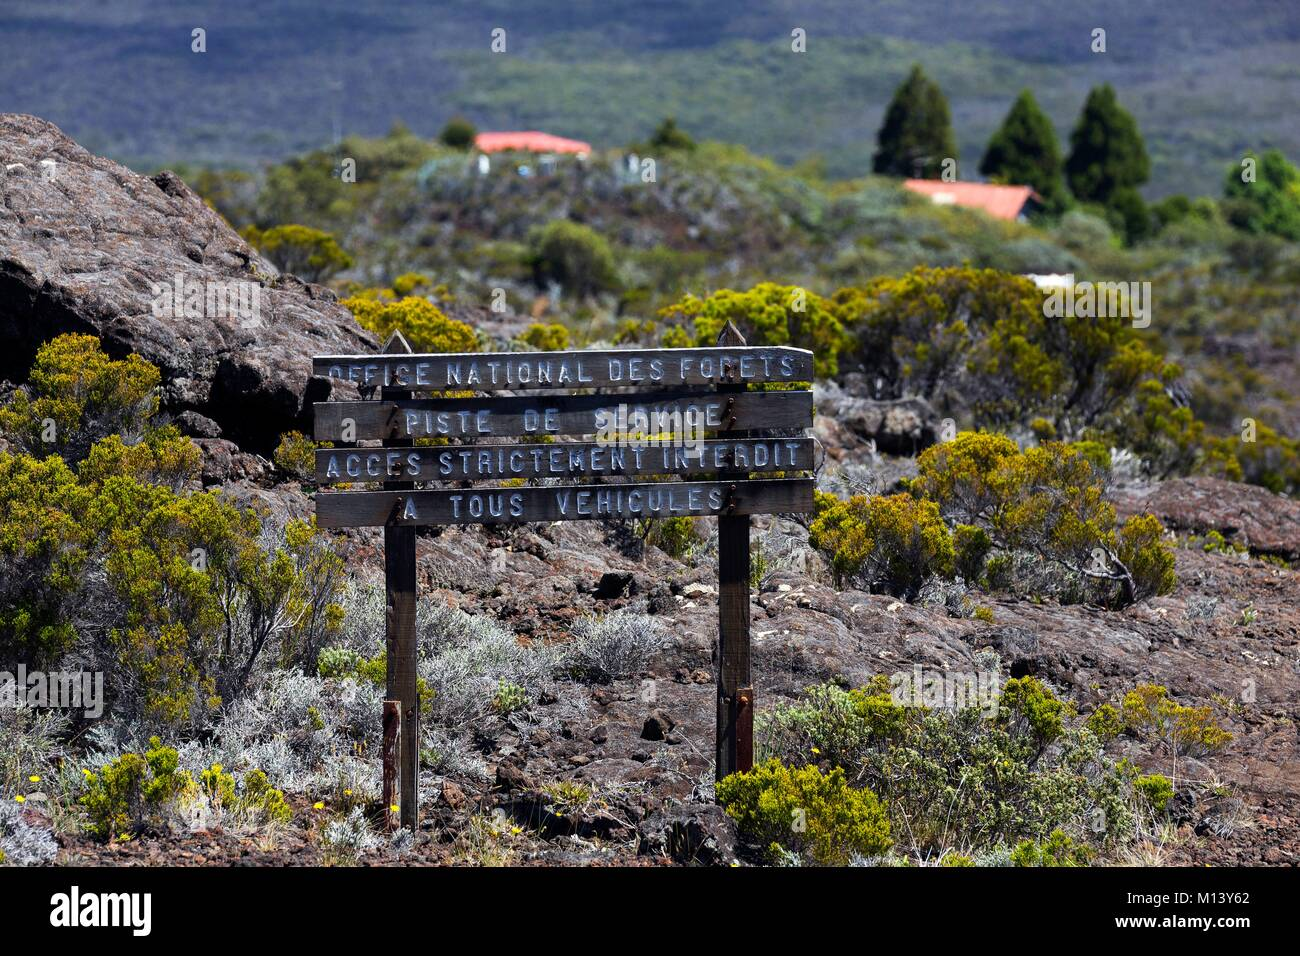 France, Reunion island, Reunion National Park listed as World Heritage by UNESCO, Piton de la Fournaise volcano - Stock Image